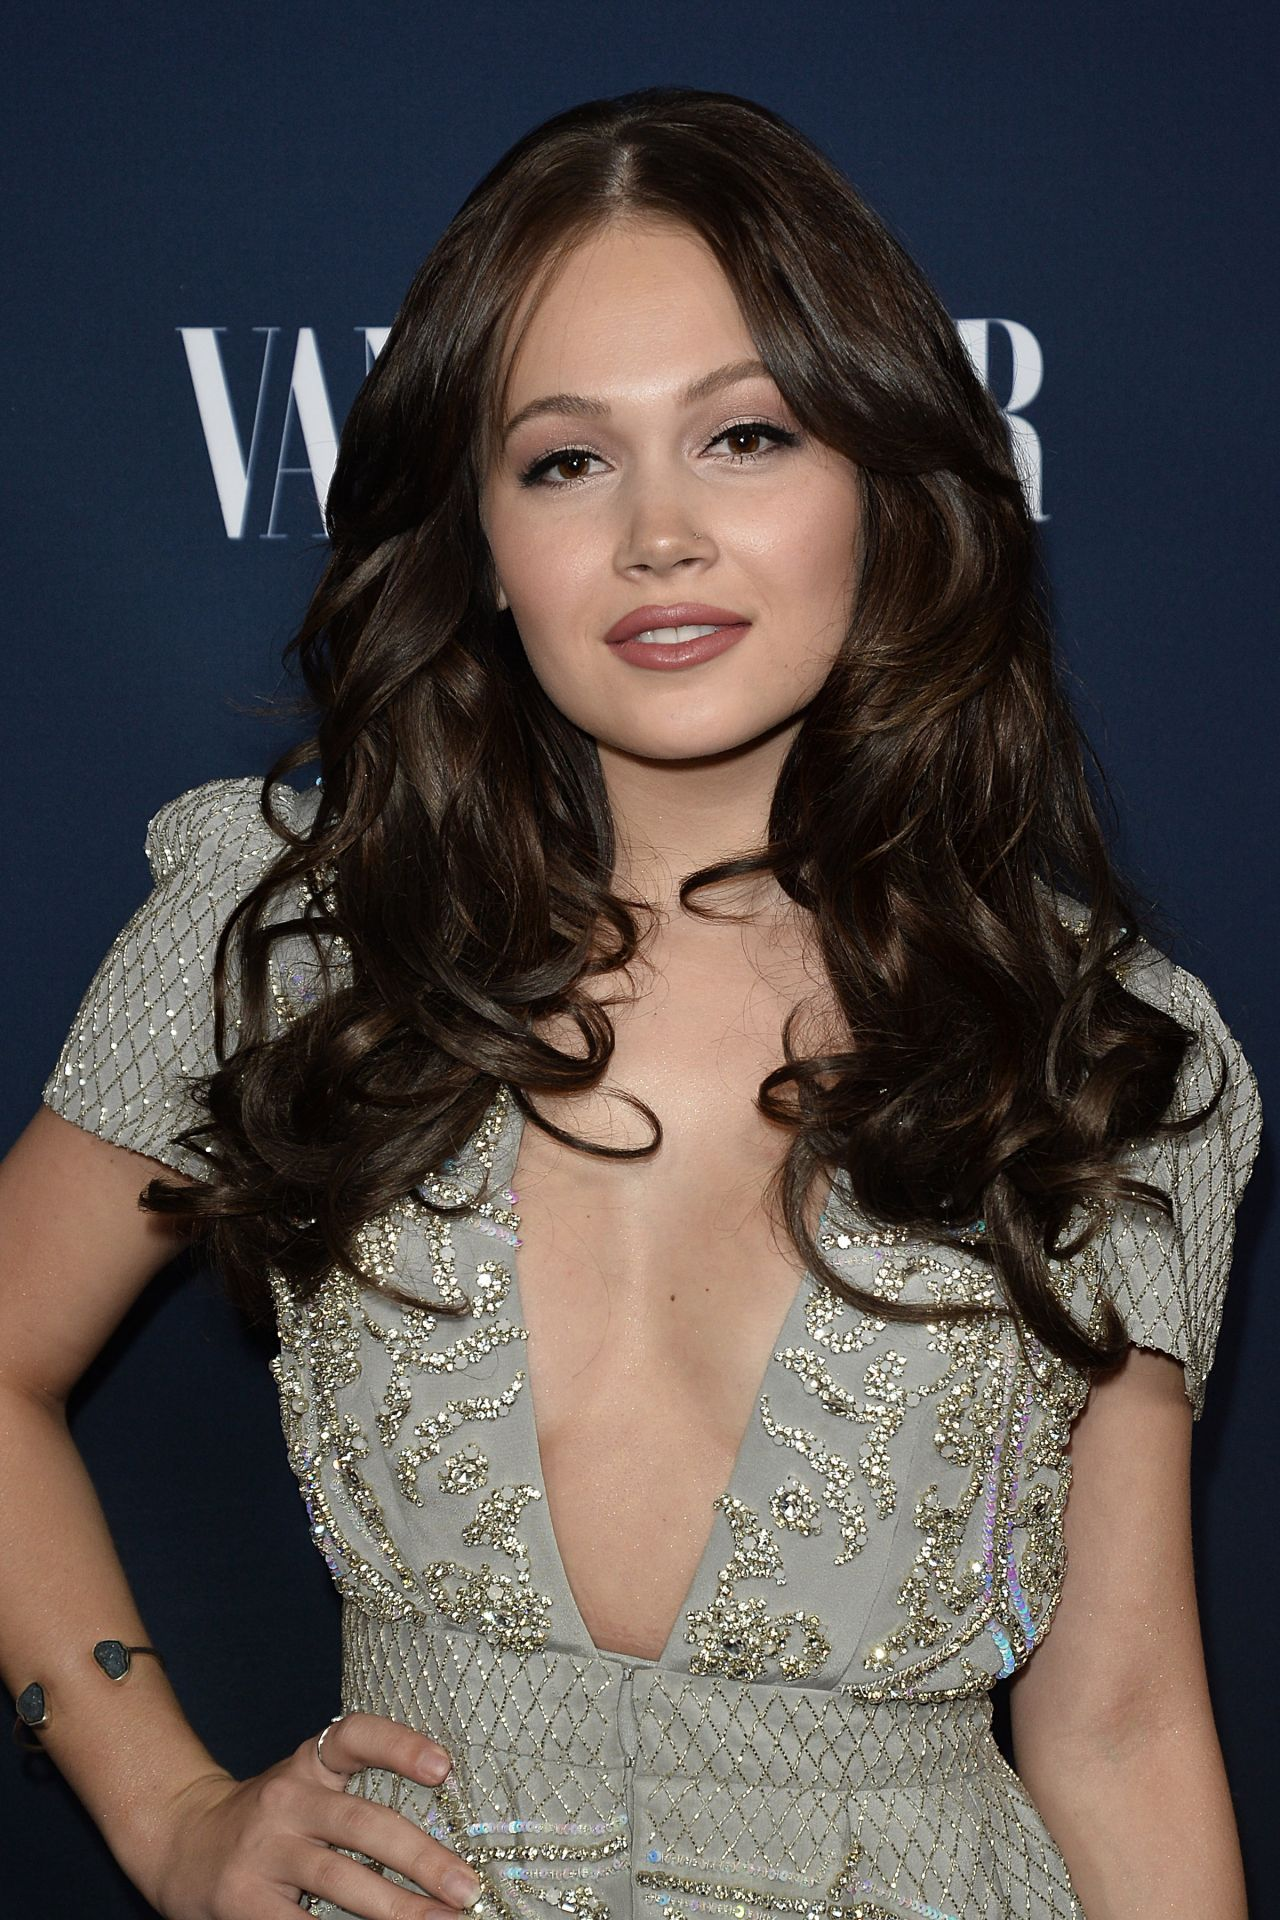 Young Kelli Berglund  nudes (55 images), iCloud, see through